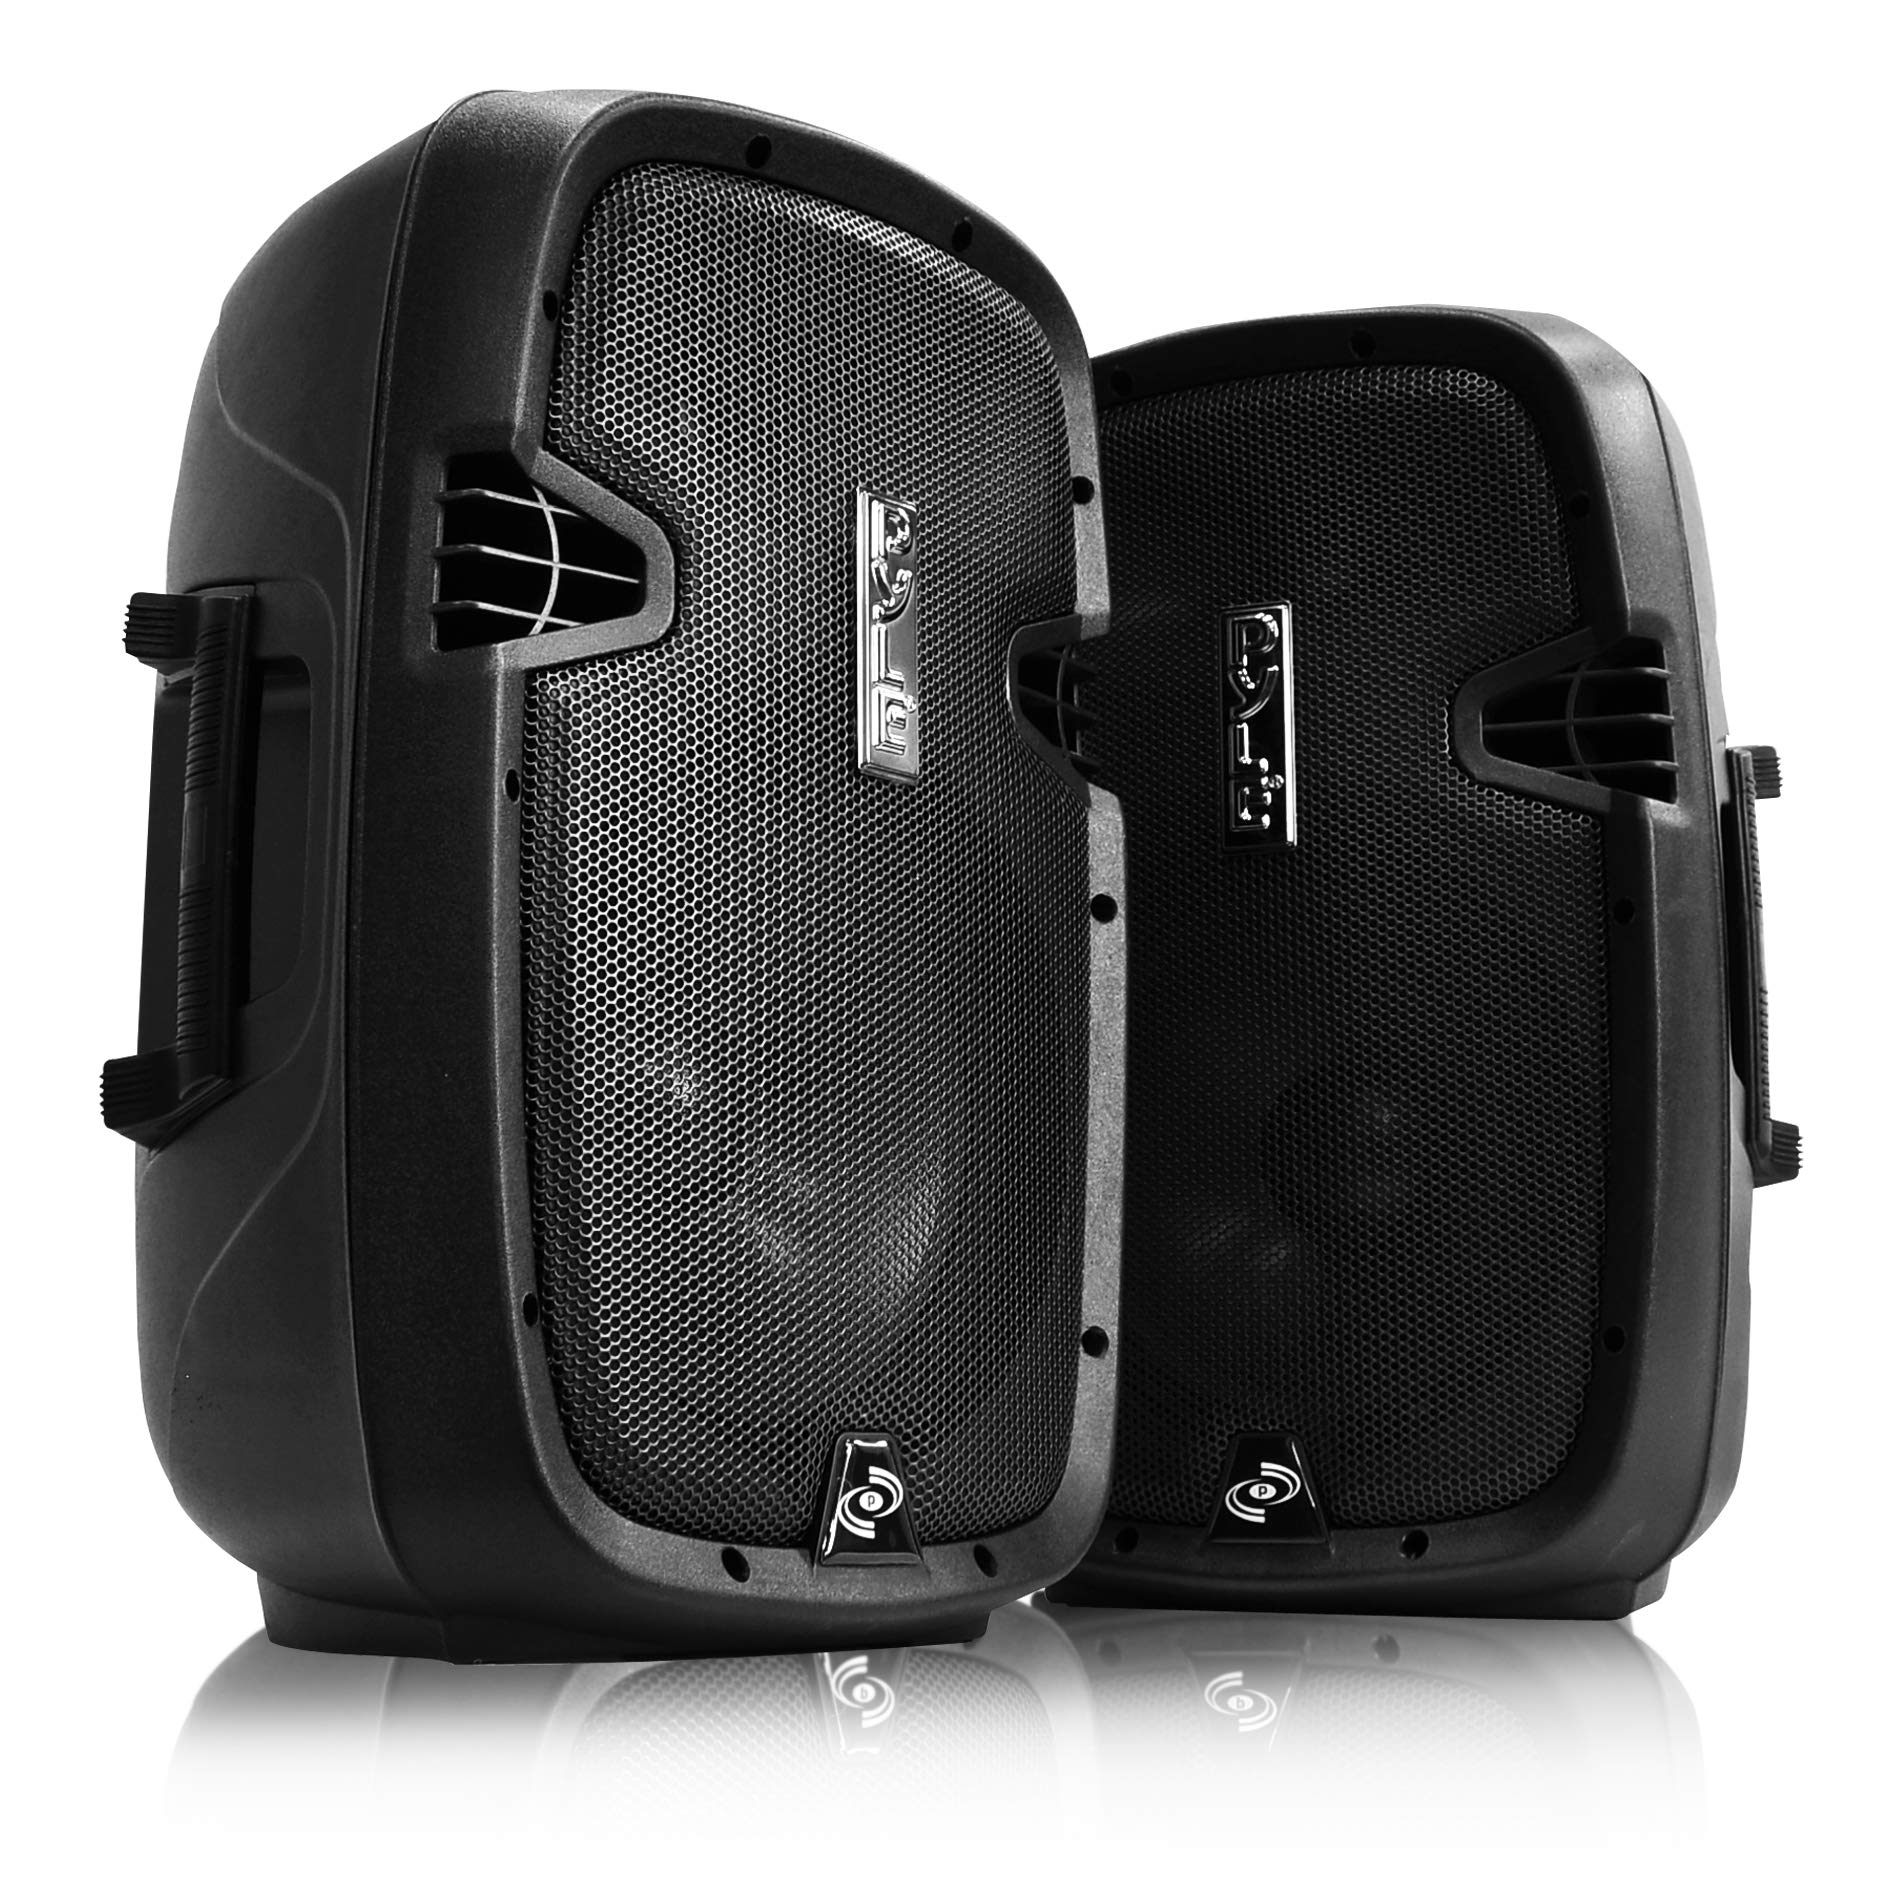 Wireless Portable PA Speaker System - 1000W High Powered Bluetooth Compatible Active + Passive Pair Outdoor Sound Speakers W/USB SD MP3 AUX - 35mm Mount, 2 Stand, Microphone, Remote - Pyle